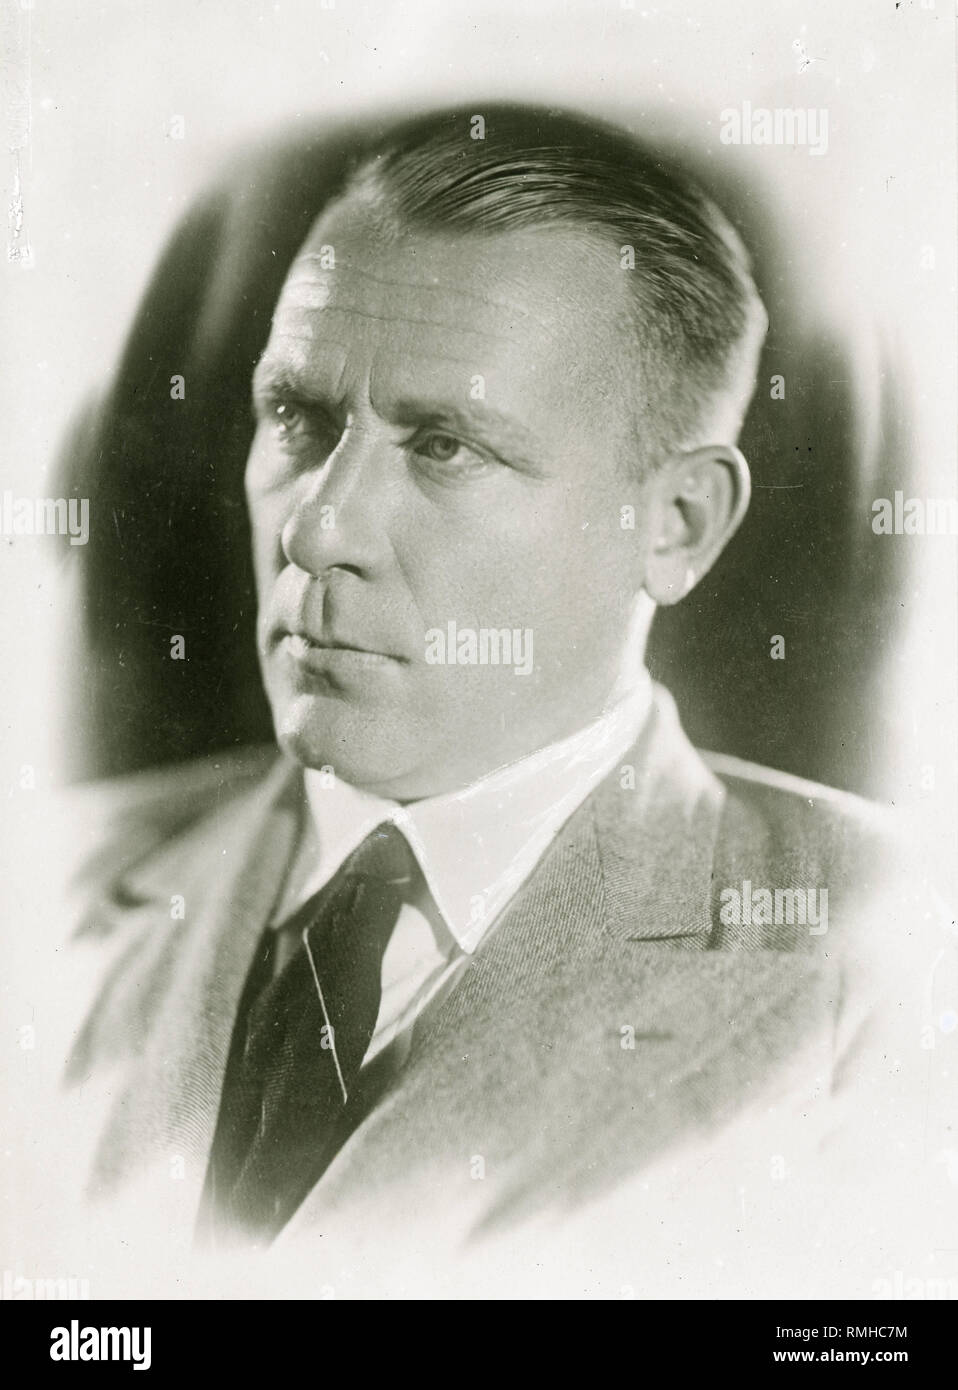 Portrait of the author Mikhail Bulgakov (1891-1940). Photograph - Stock Image